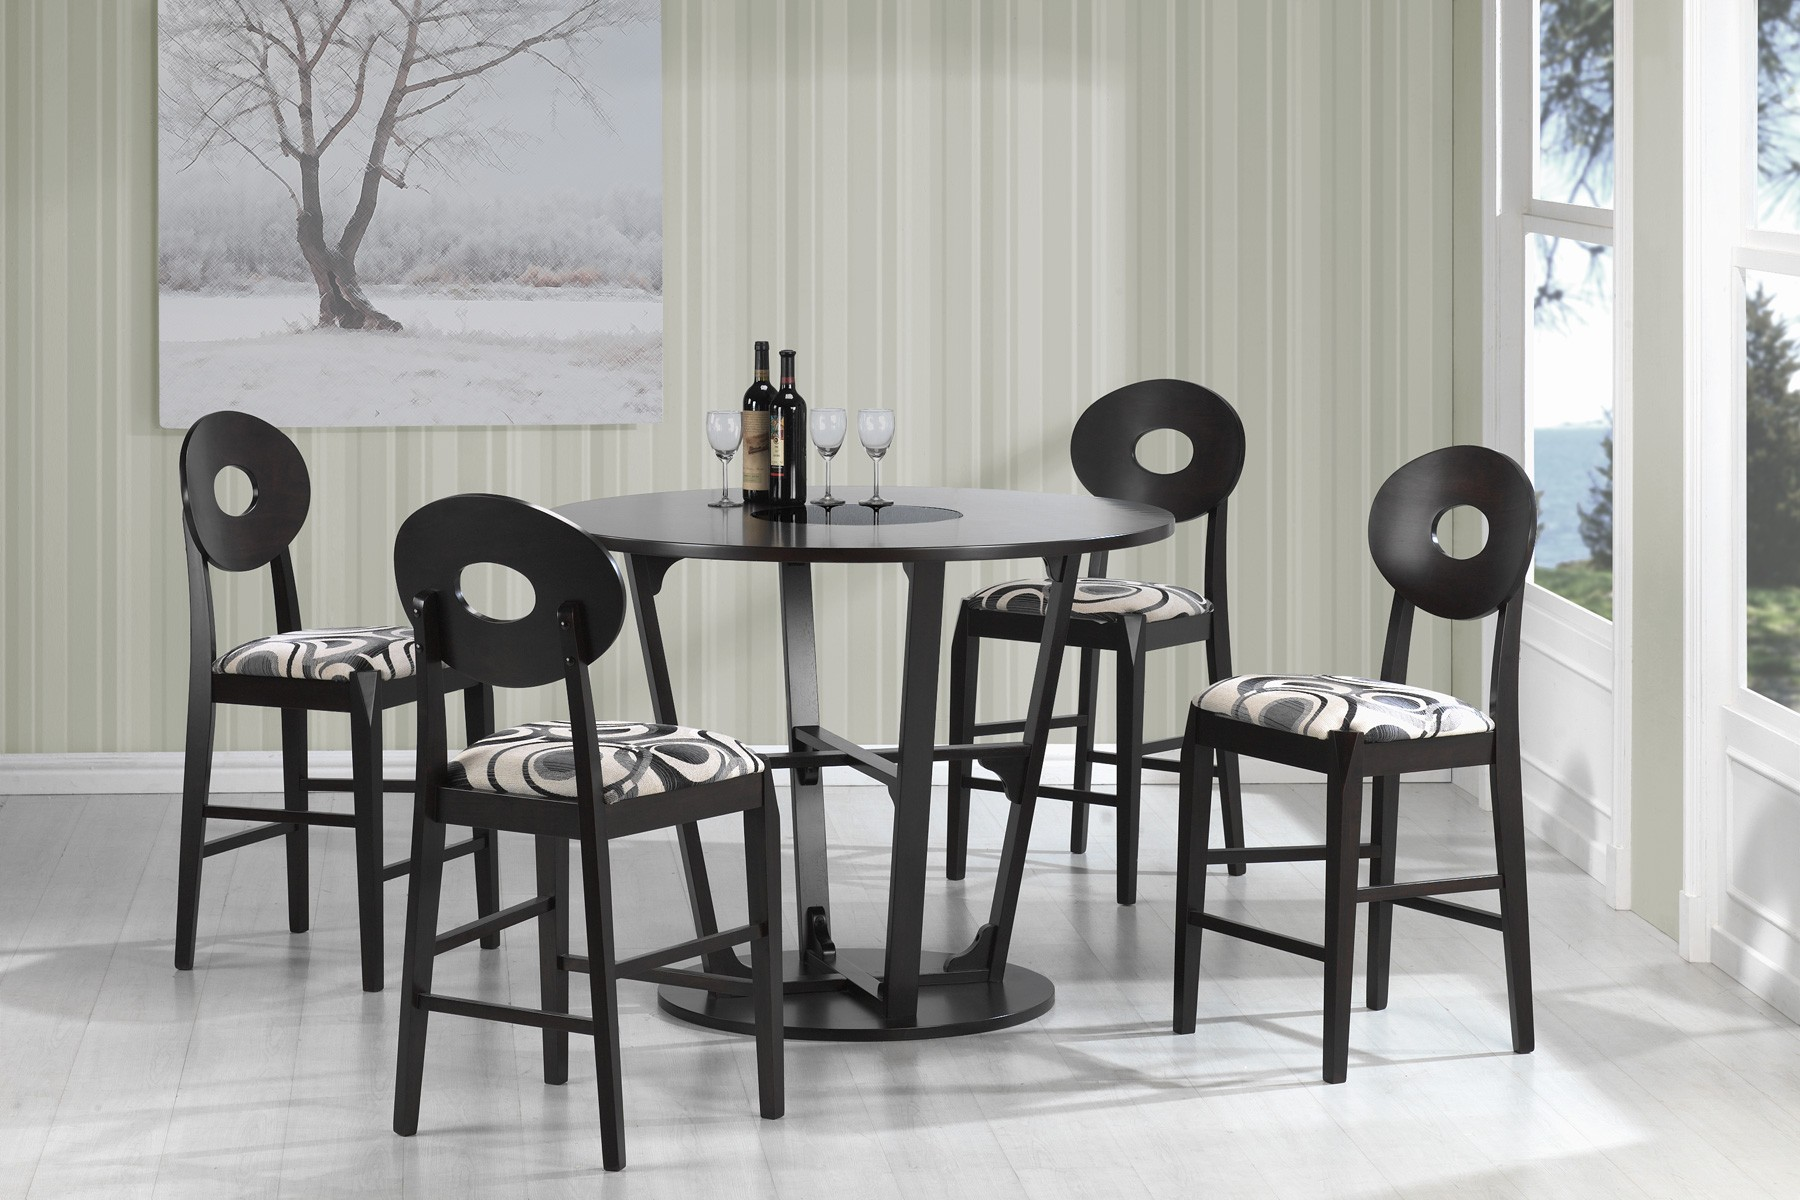 gregory cappuccino counter height dining room set 103861 stapleton cappuccino round dining room set 106741